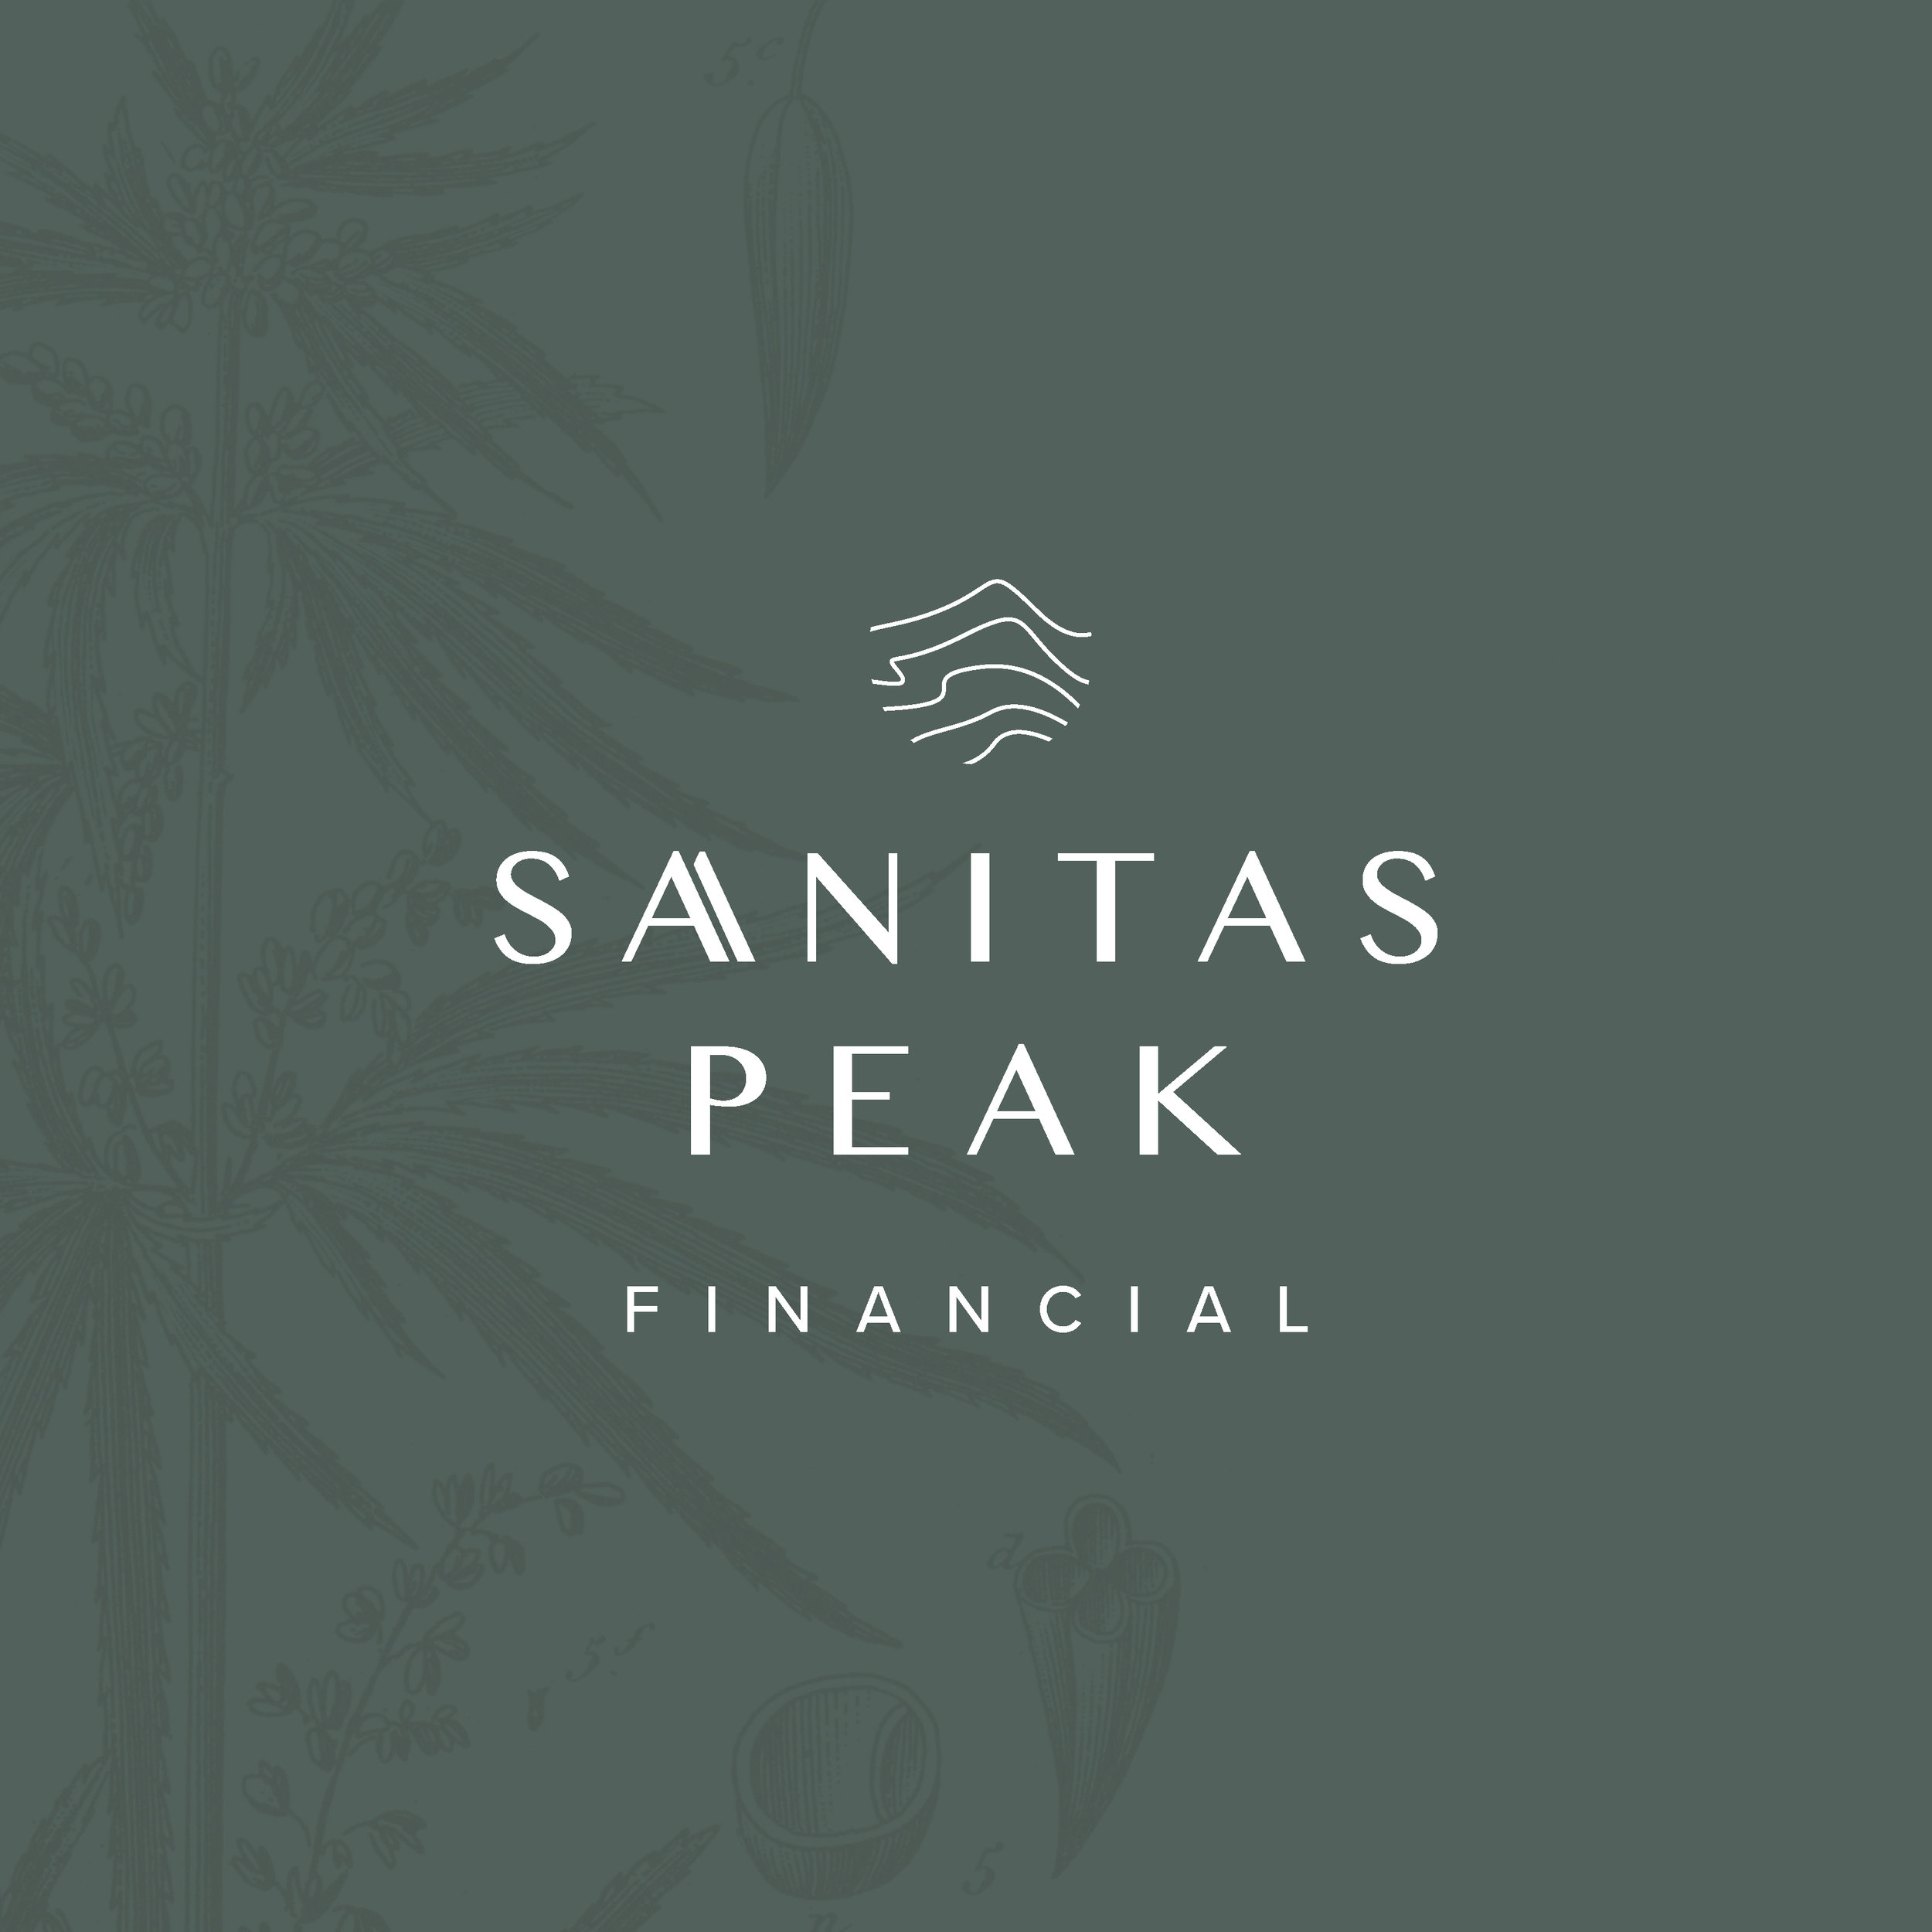 Sanitas Peak Financial -  branding and website design